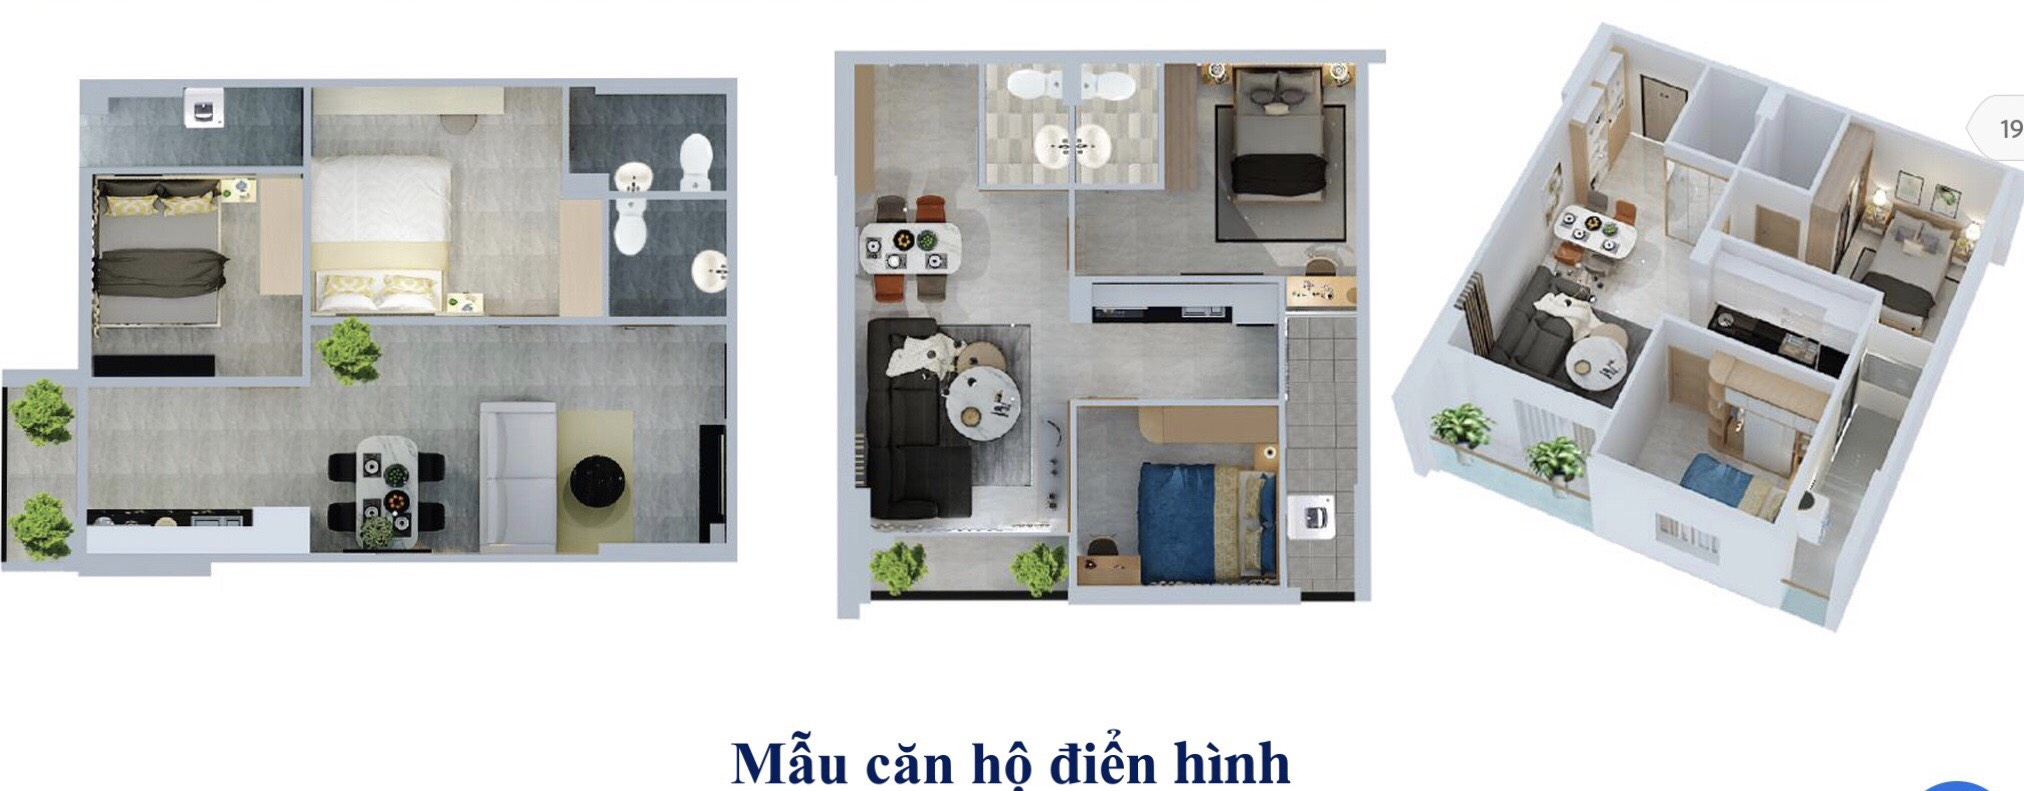 can-ho-dien-hinh-parkview-apartment